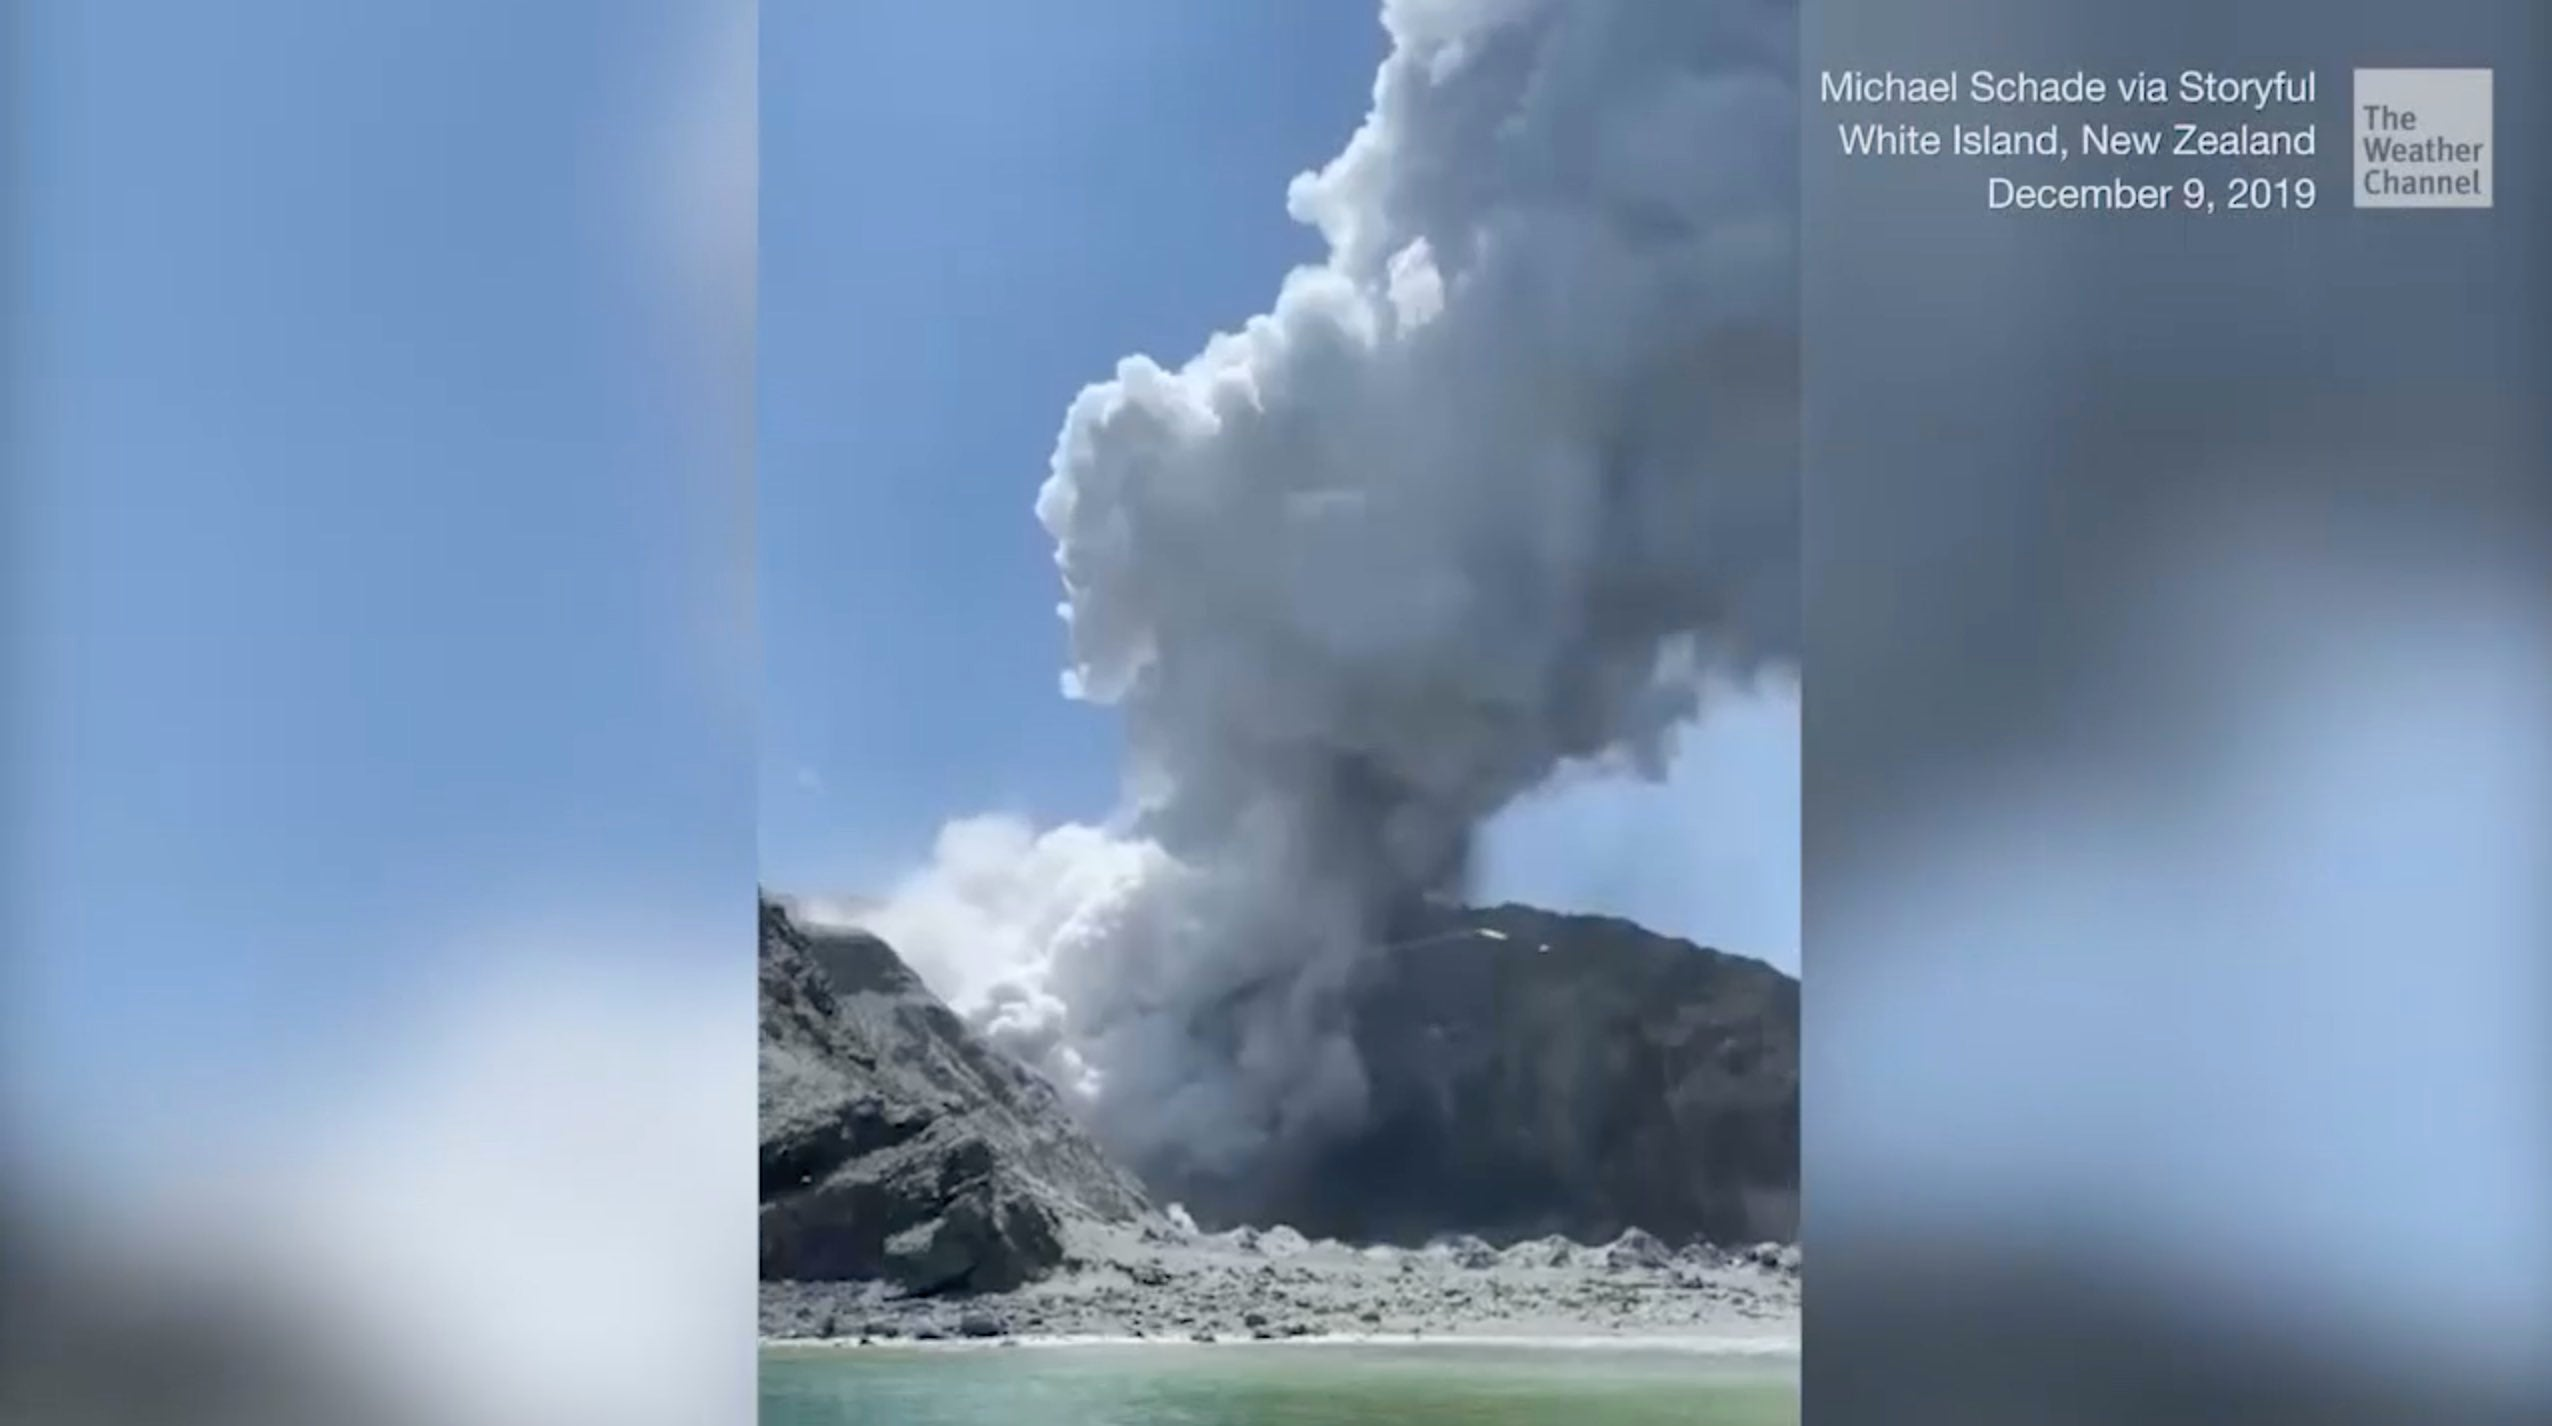 The blast at a popular tourist spot caused several injuries.